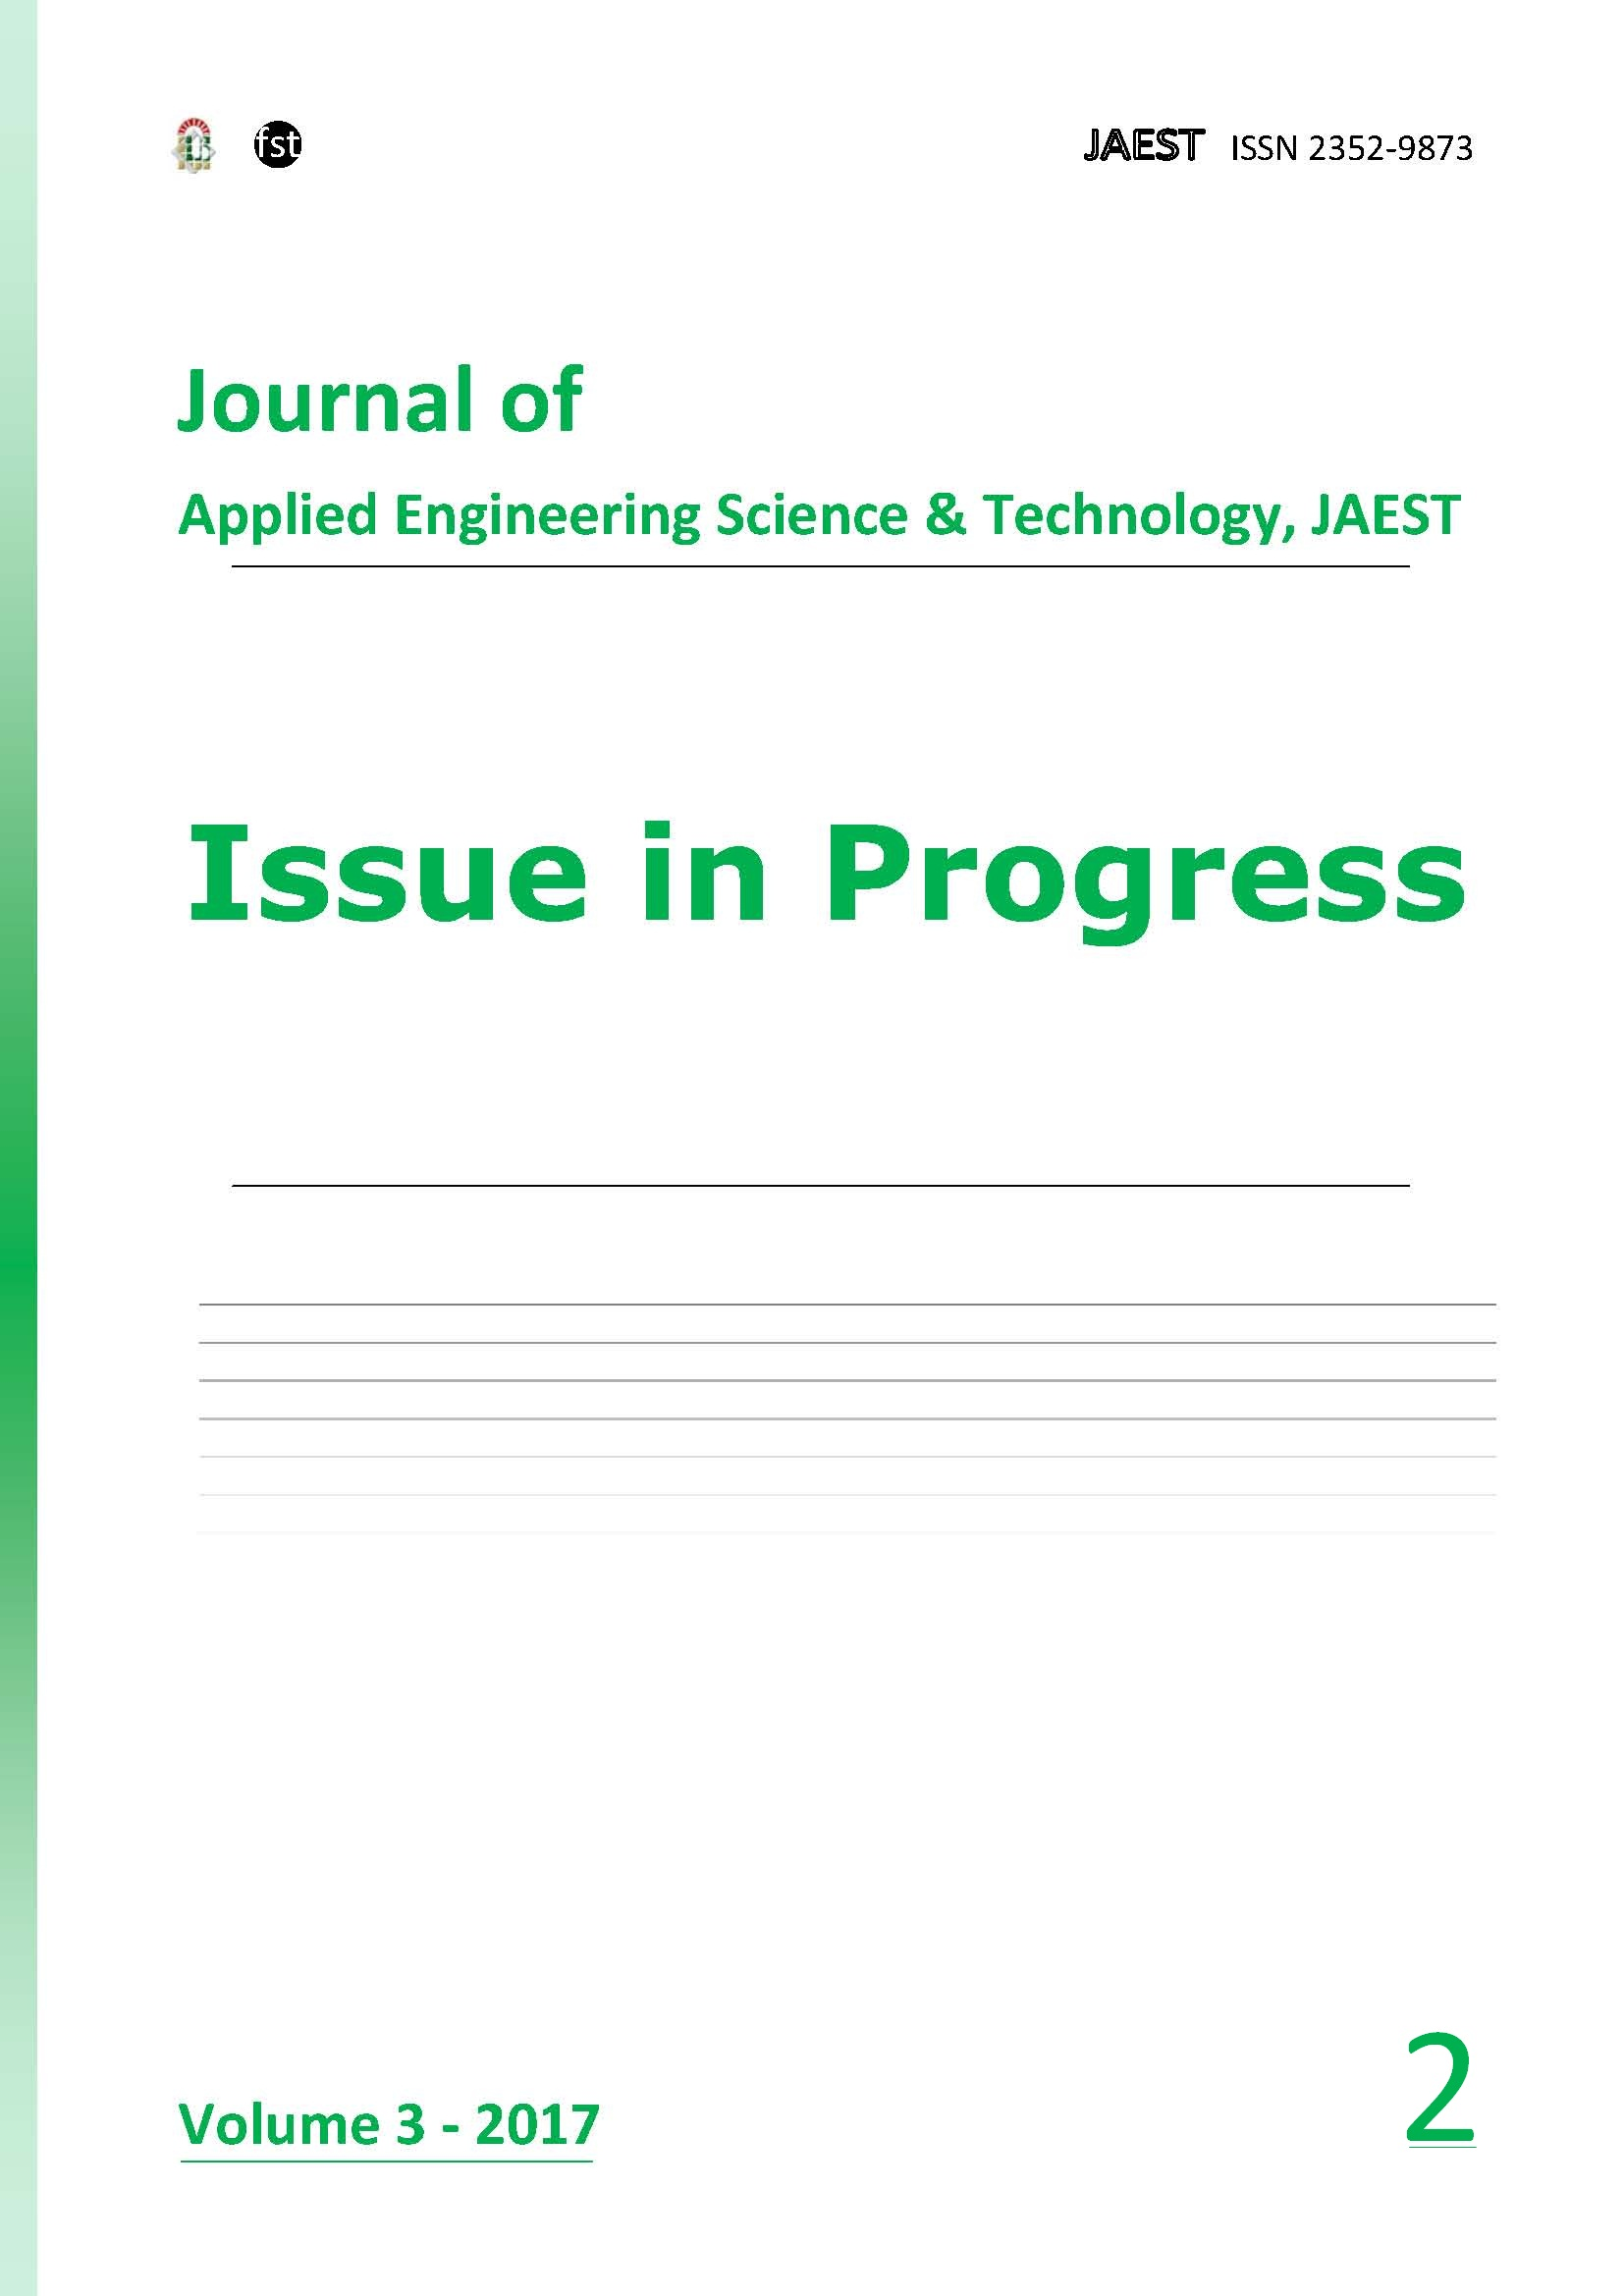 JAEST: Volume 3, Issue 2, December 2017